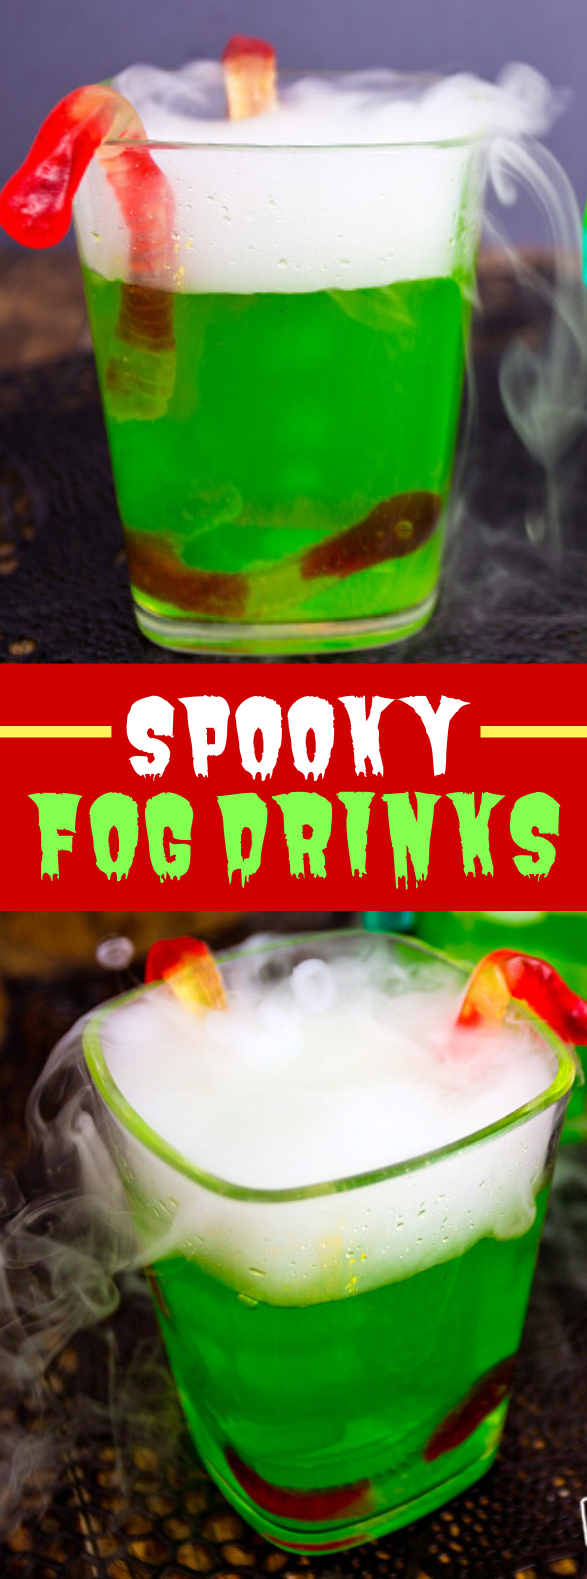 SPOOKY FOG DRINKS FOR A HALLOWEEN PARTY #kidfriendly #dryice